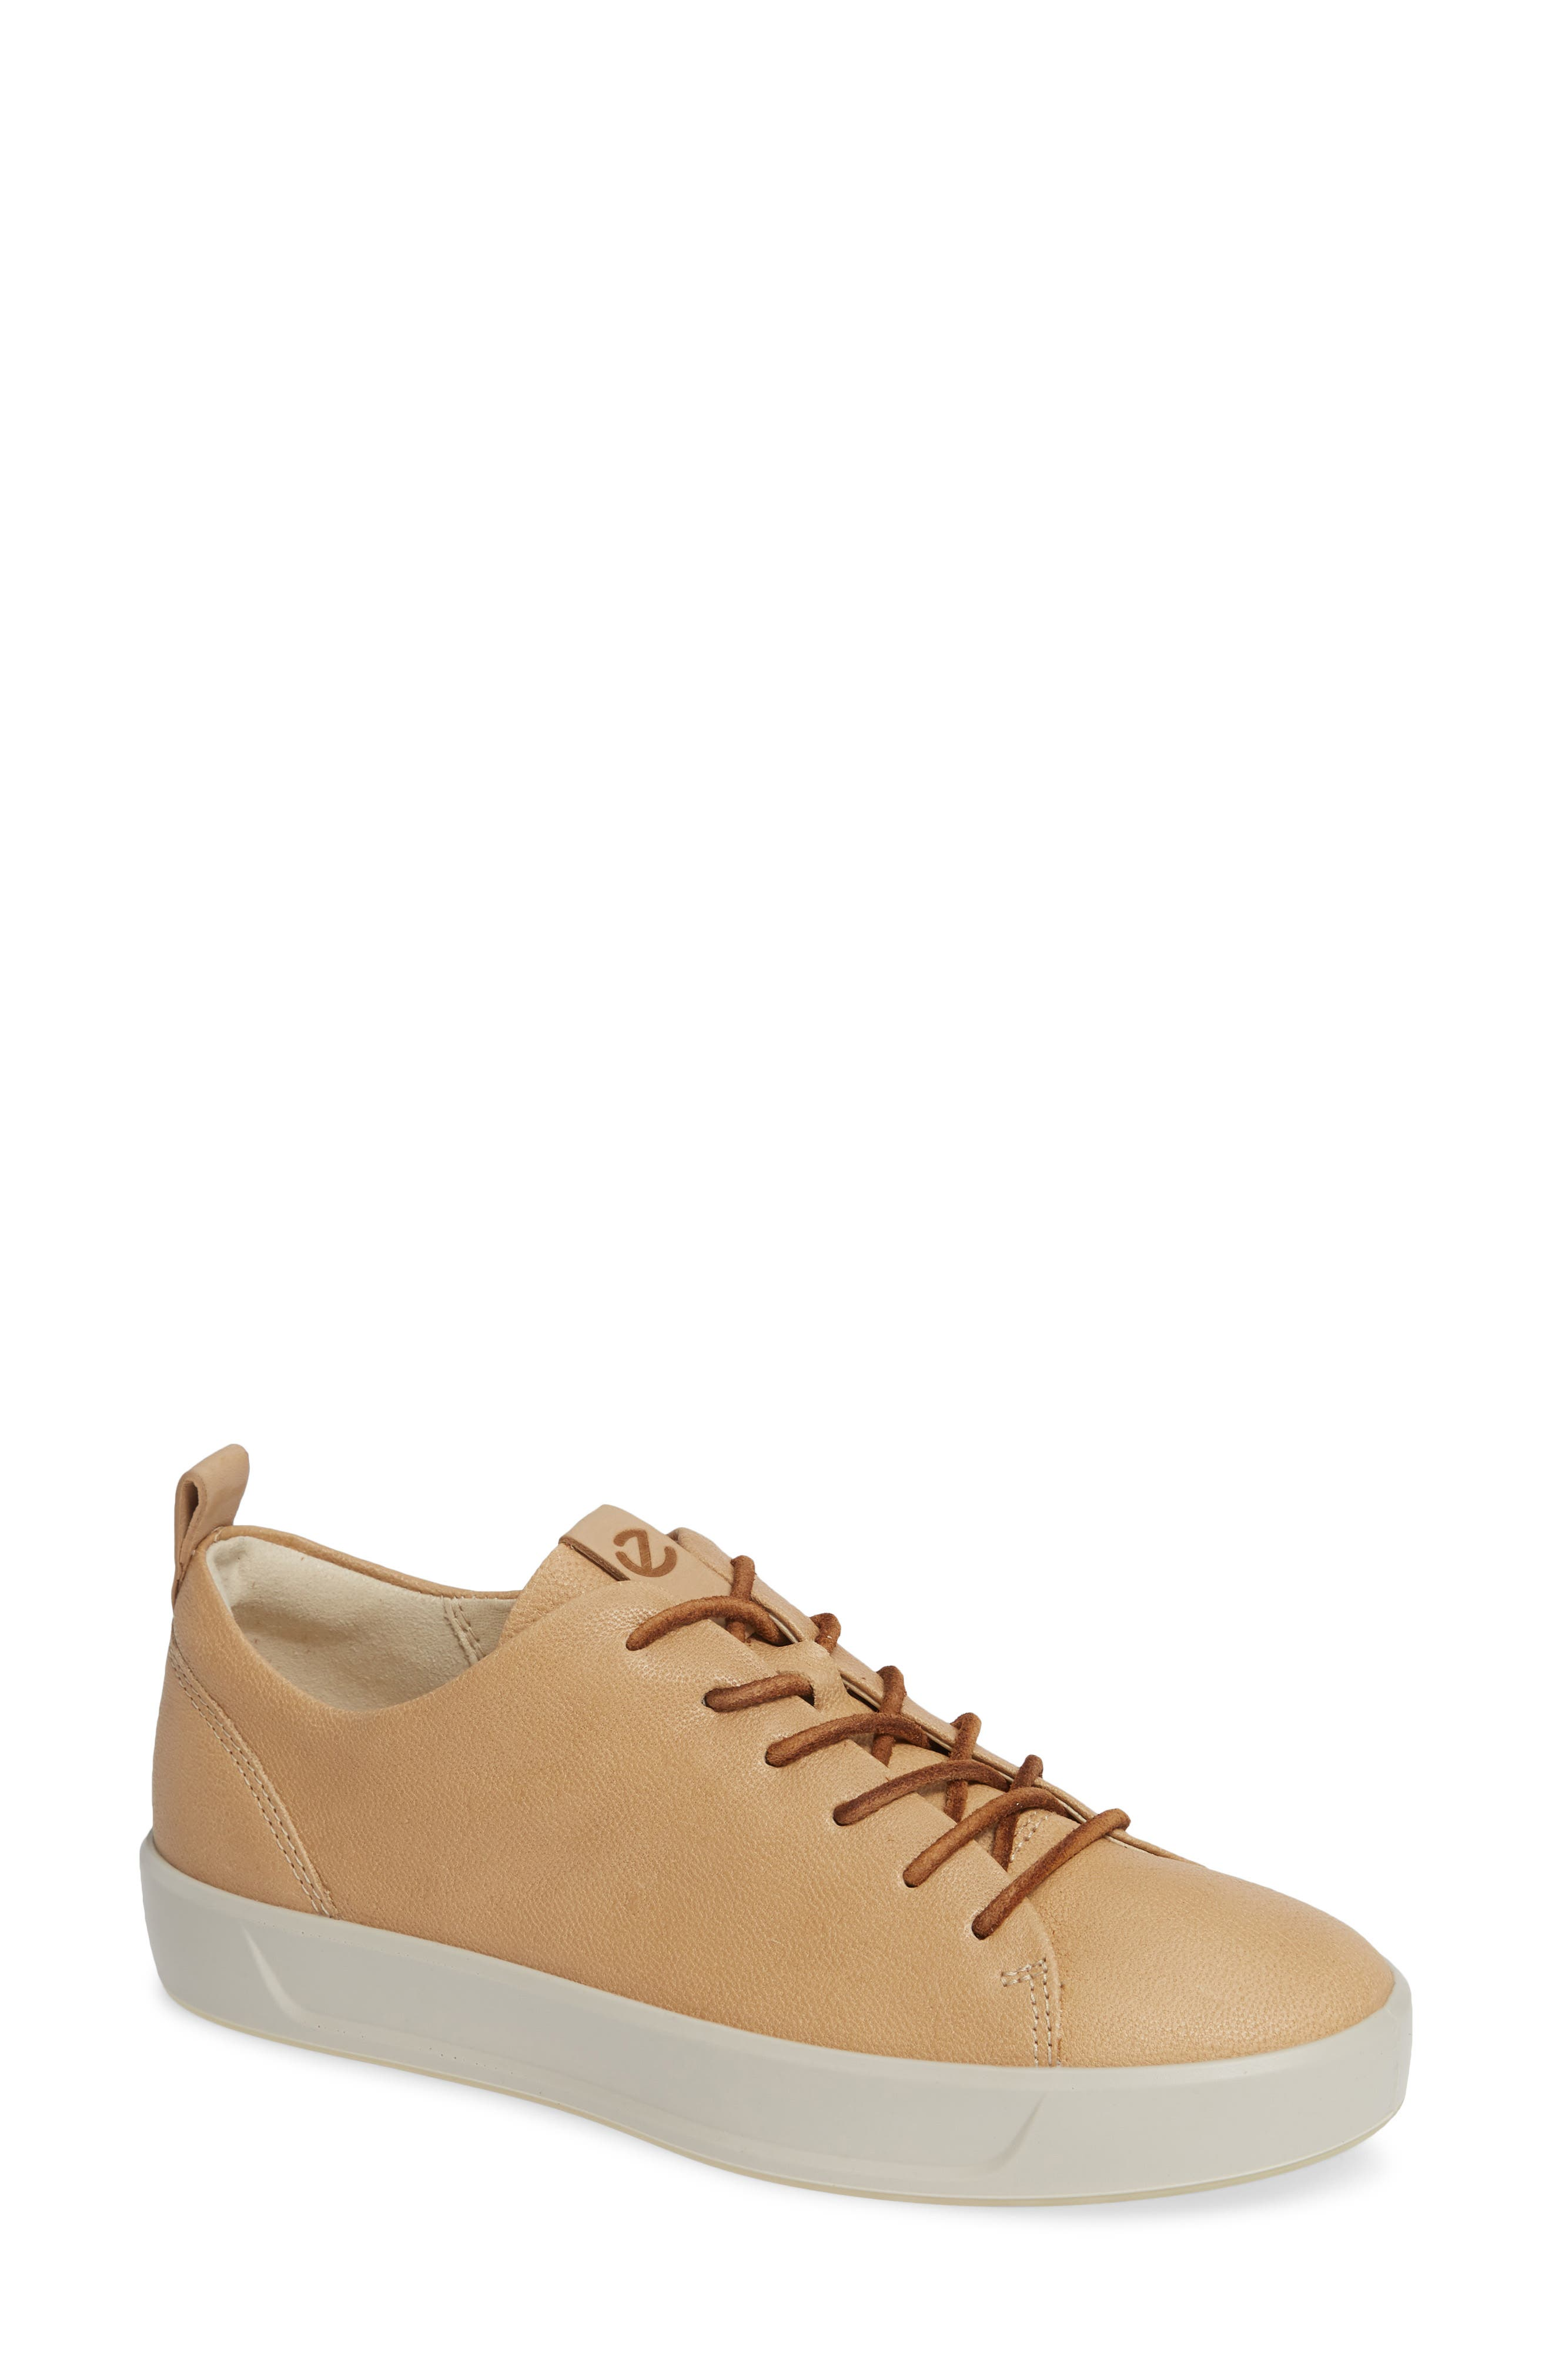 Soft 8 Sneaker,                             Main thumbnail 1, color,                             POWDER LEATHER